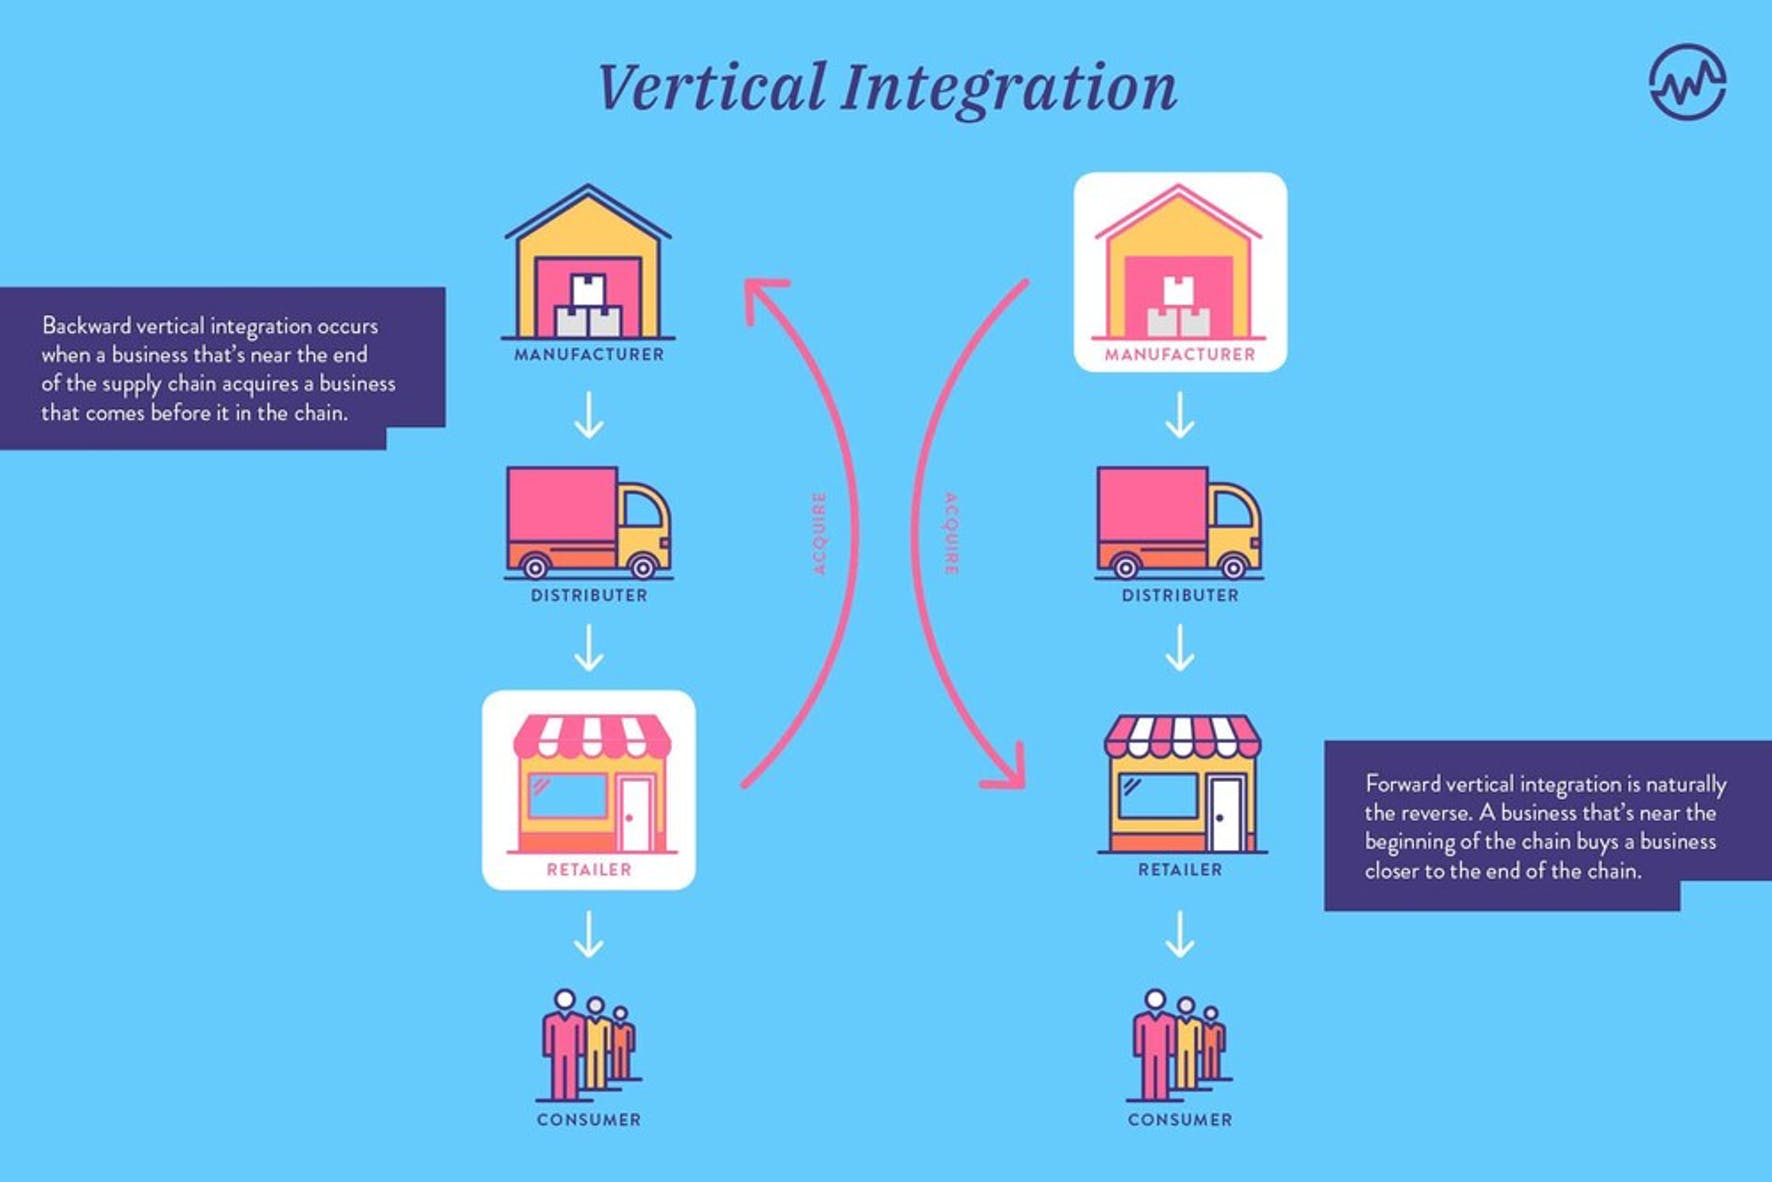 Vertical Integration graphic detailing forward and backward integration